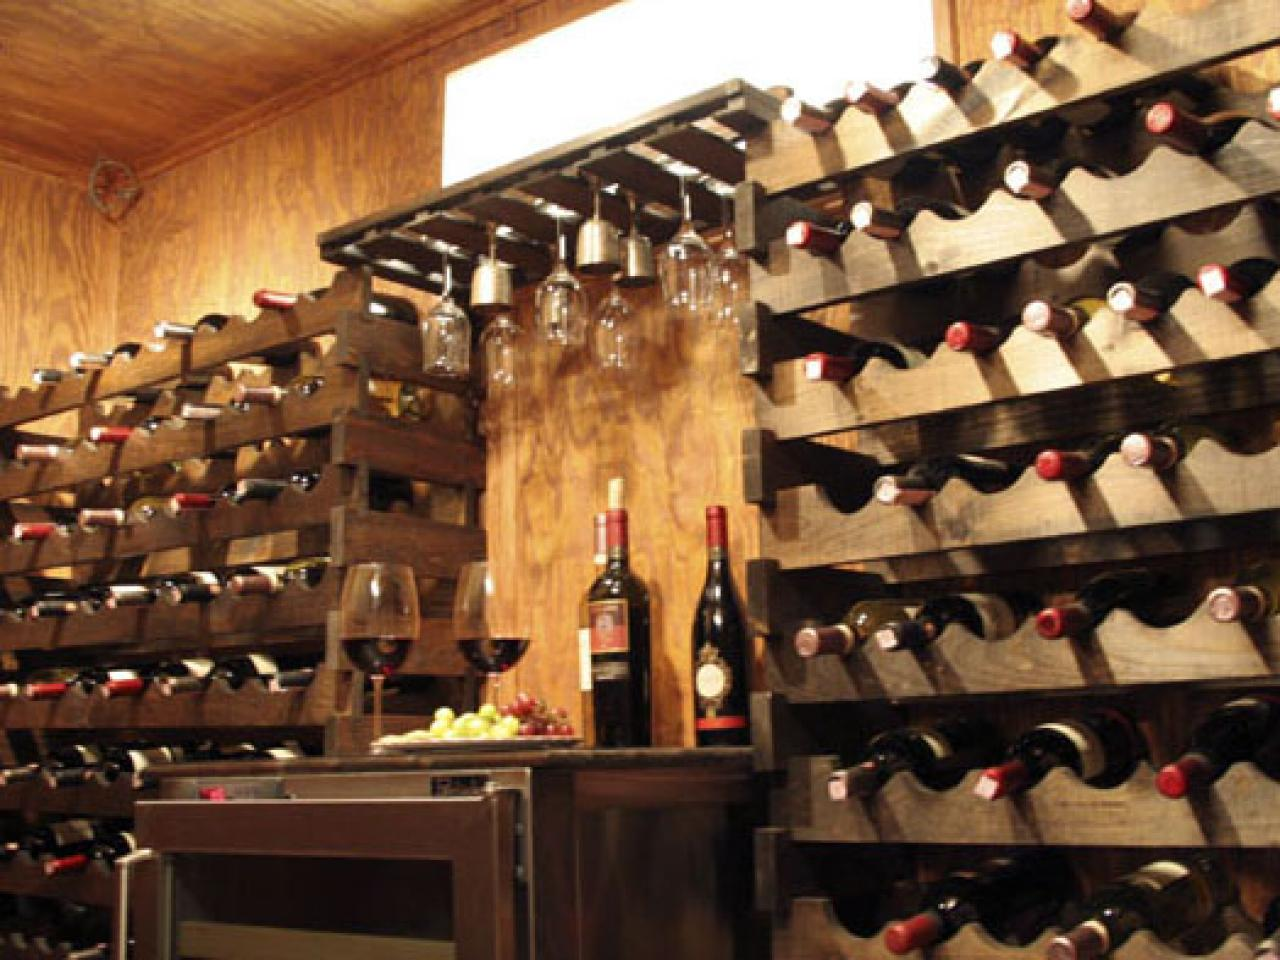 How to Build a Wine Cellar HGTV